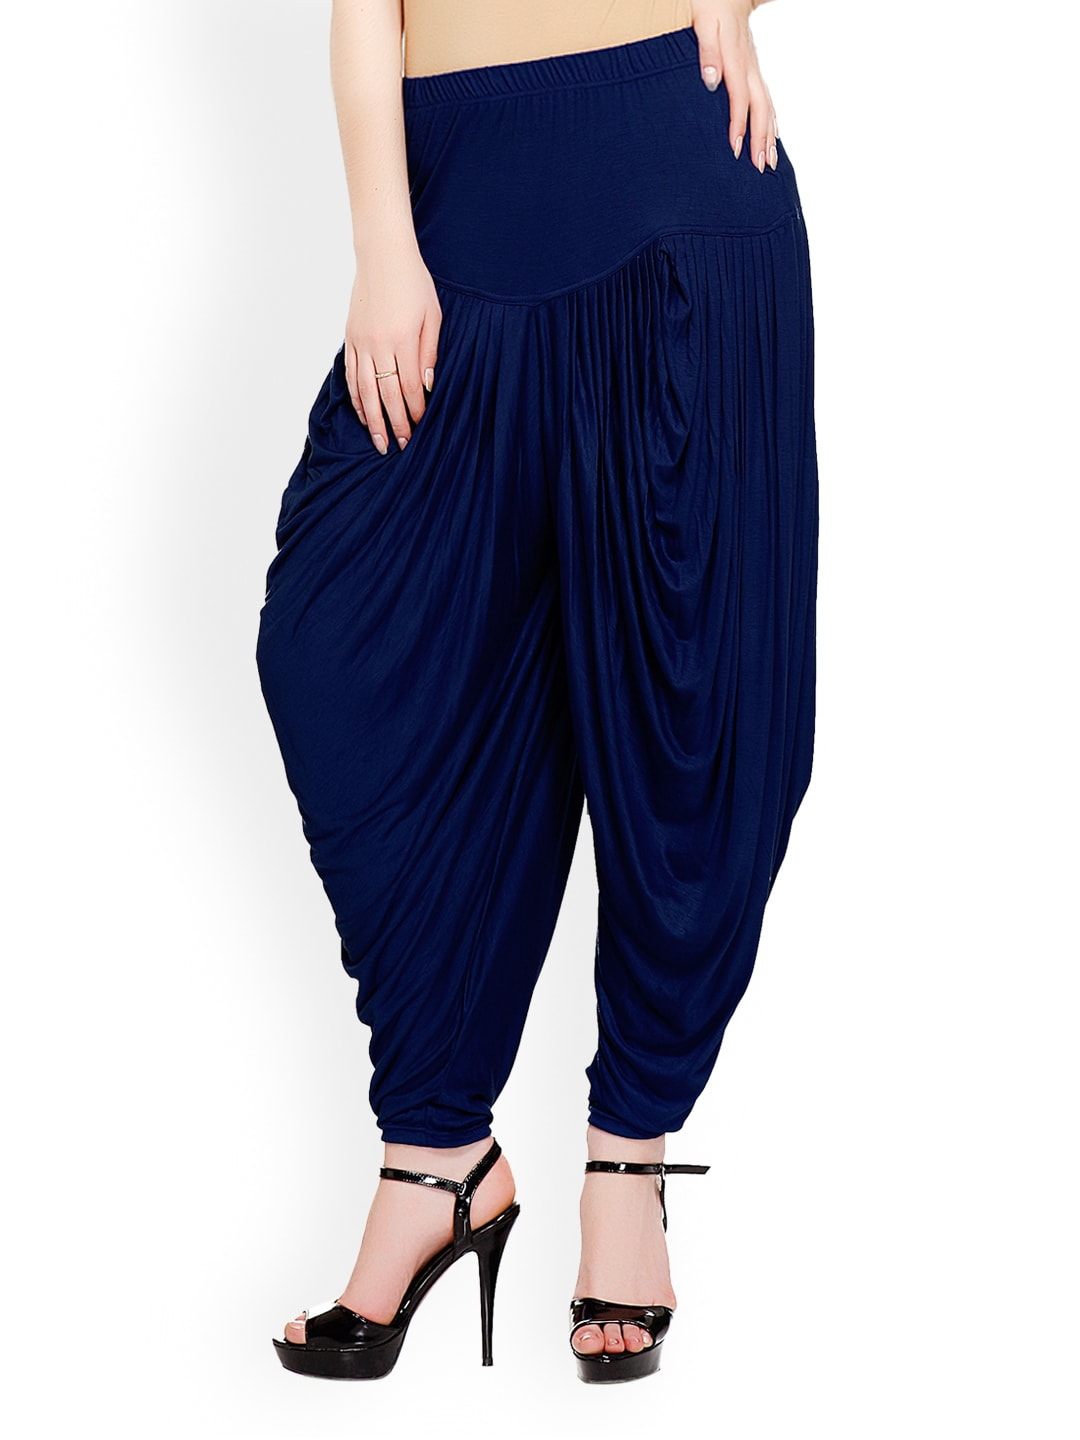 Harem Pants Check out that new got-to-have-it trend —a pair of harem pants! Look for the trademark elastic ankles and dropped waist for unmistakably cool style that goes anywhere (really!).